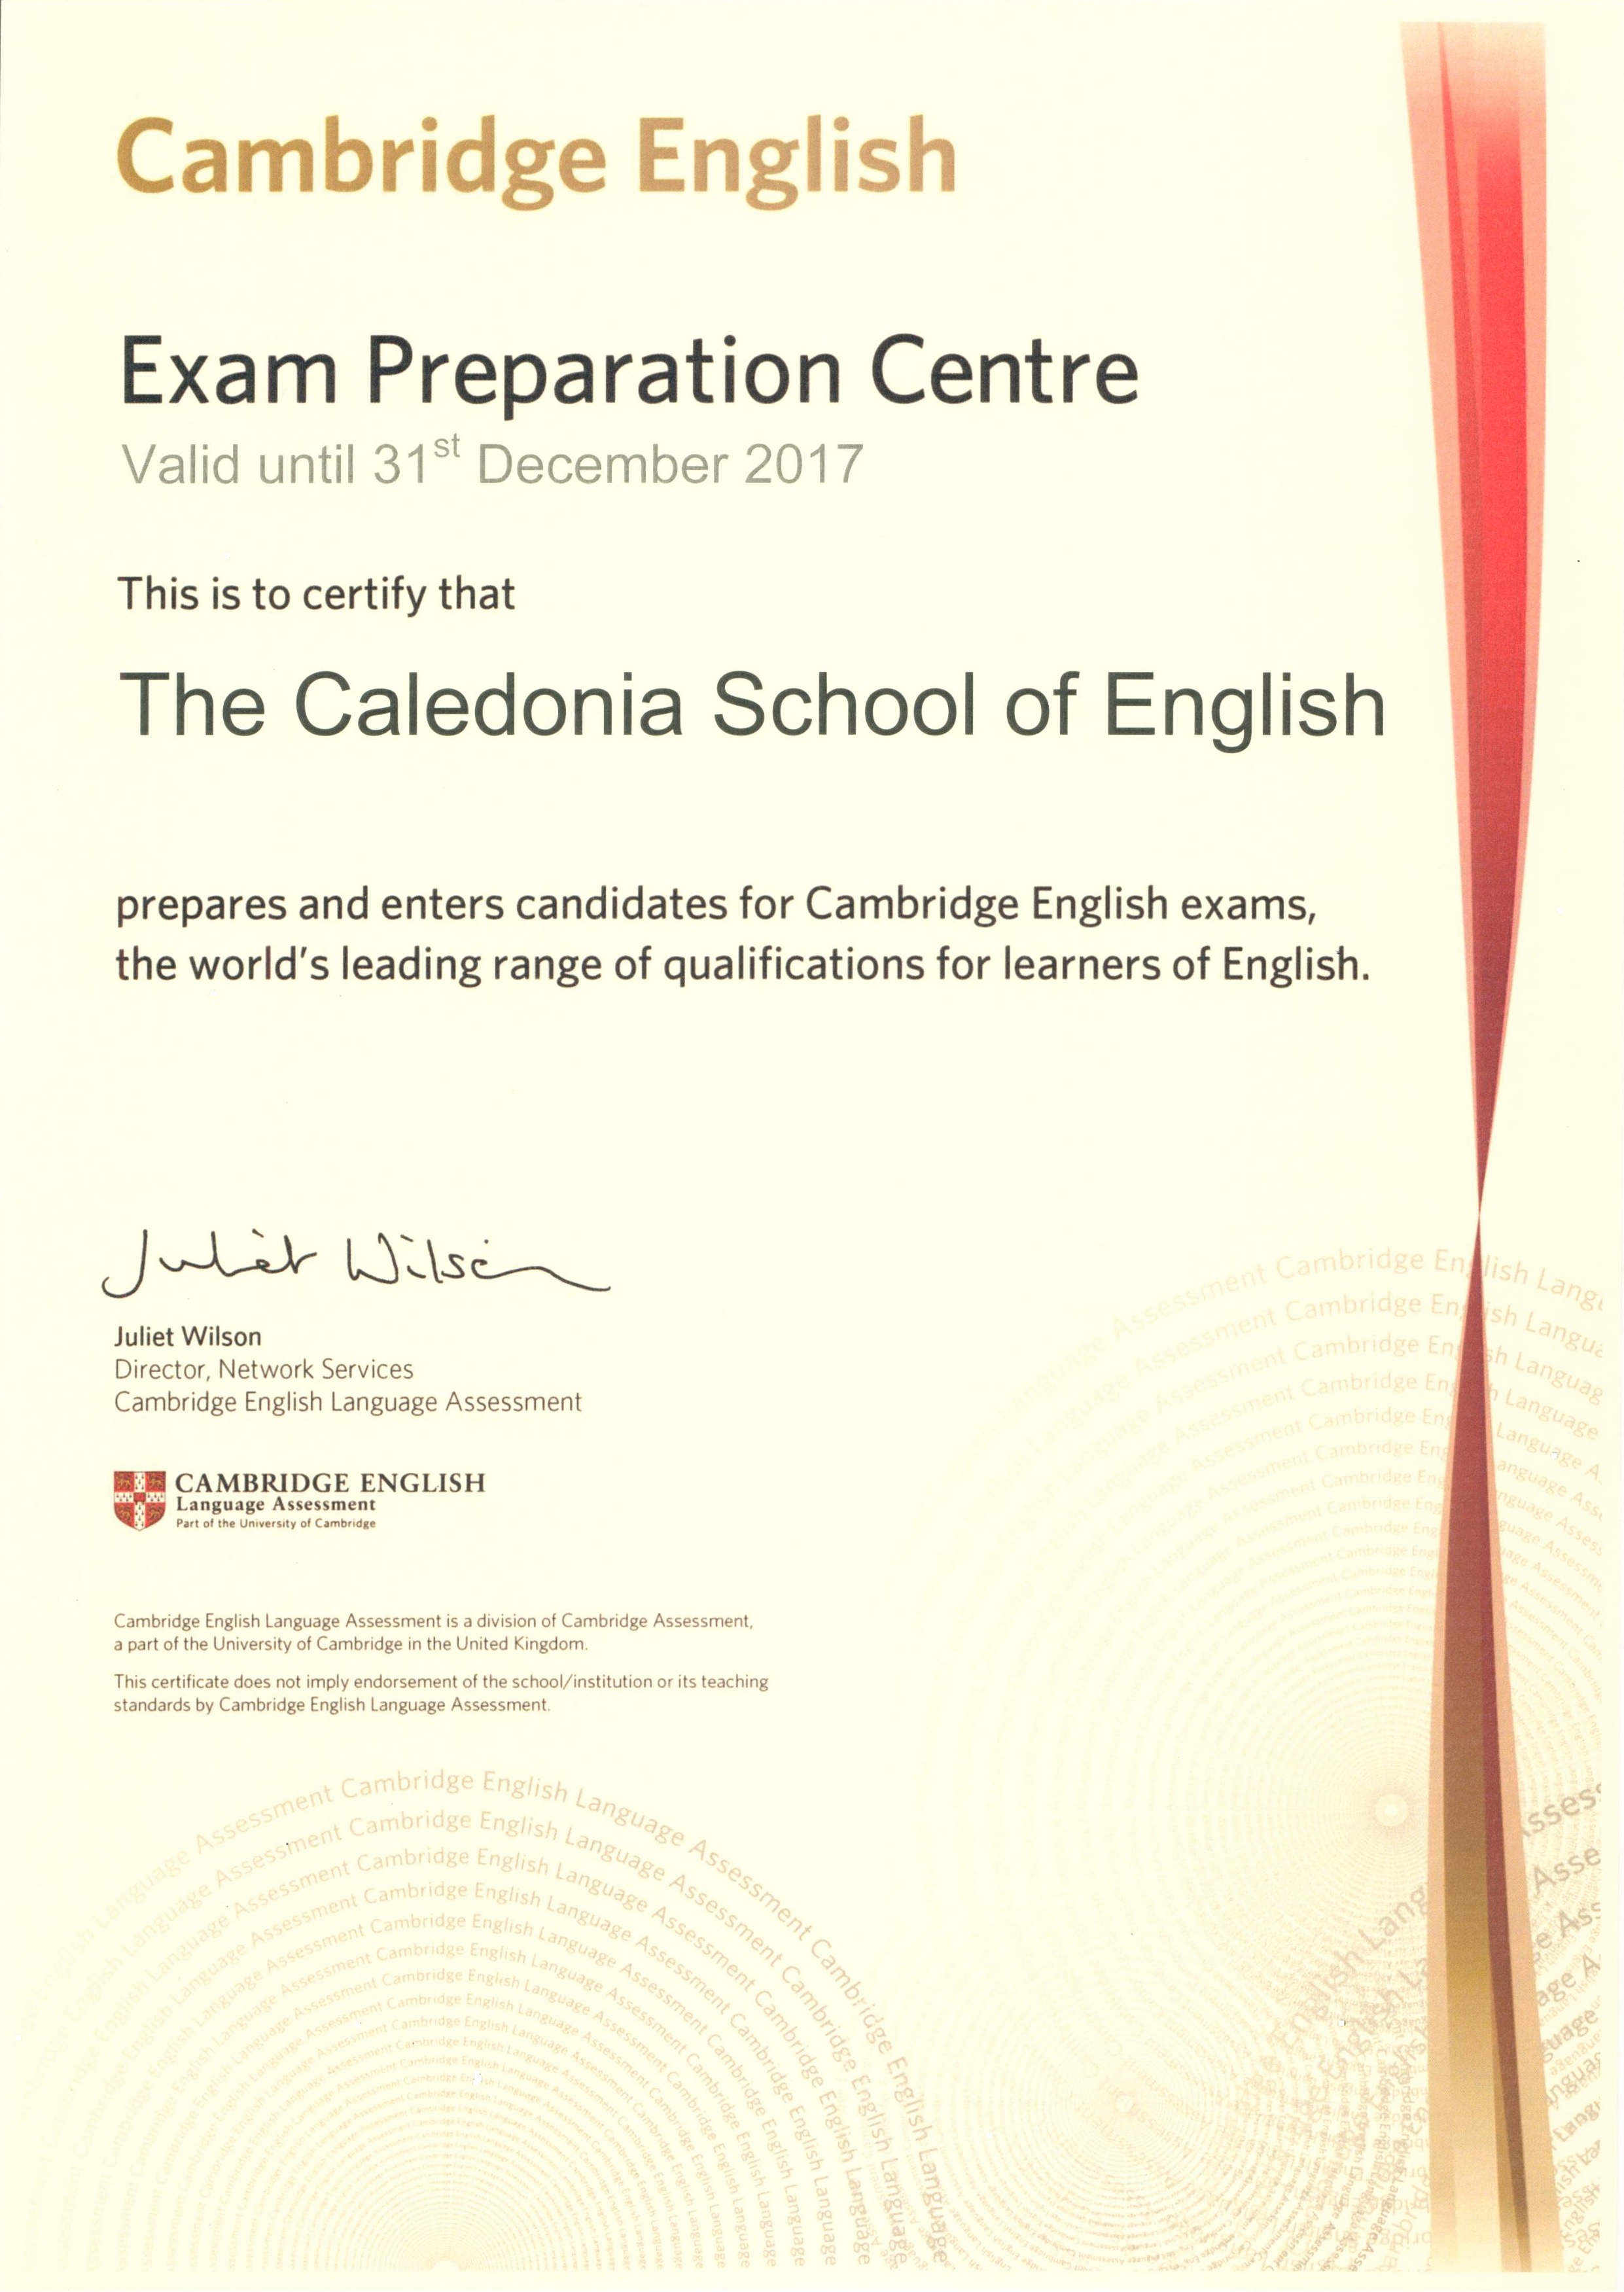 CAMBRIDGE ENGLISH Language Assessment Exam Preparation Centre 2017